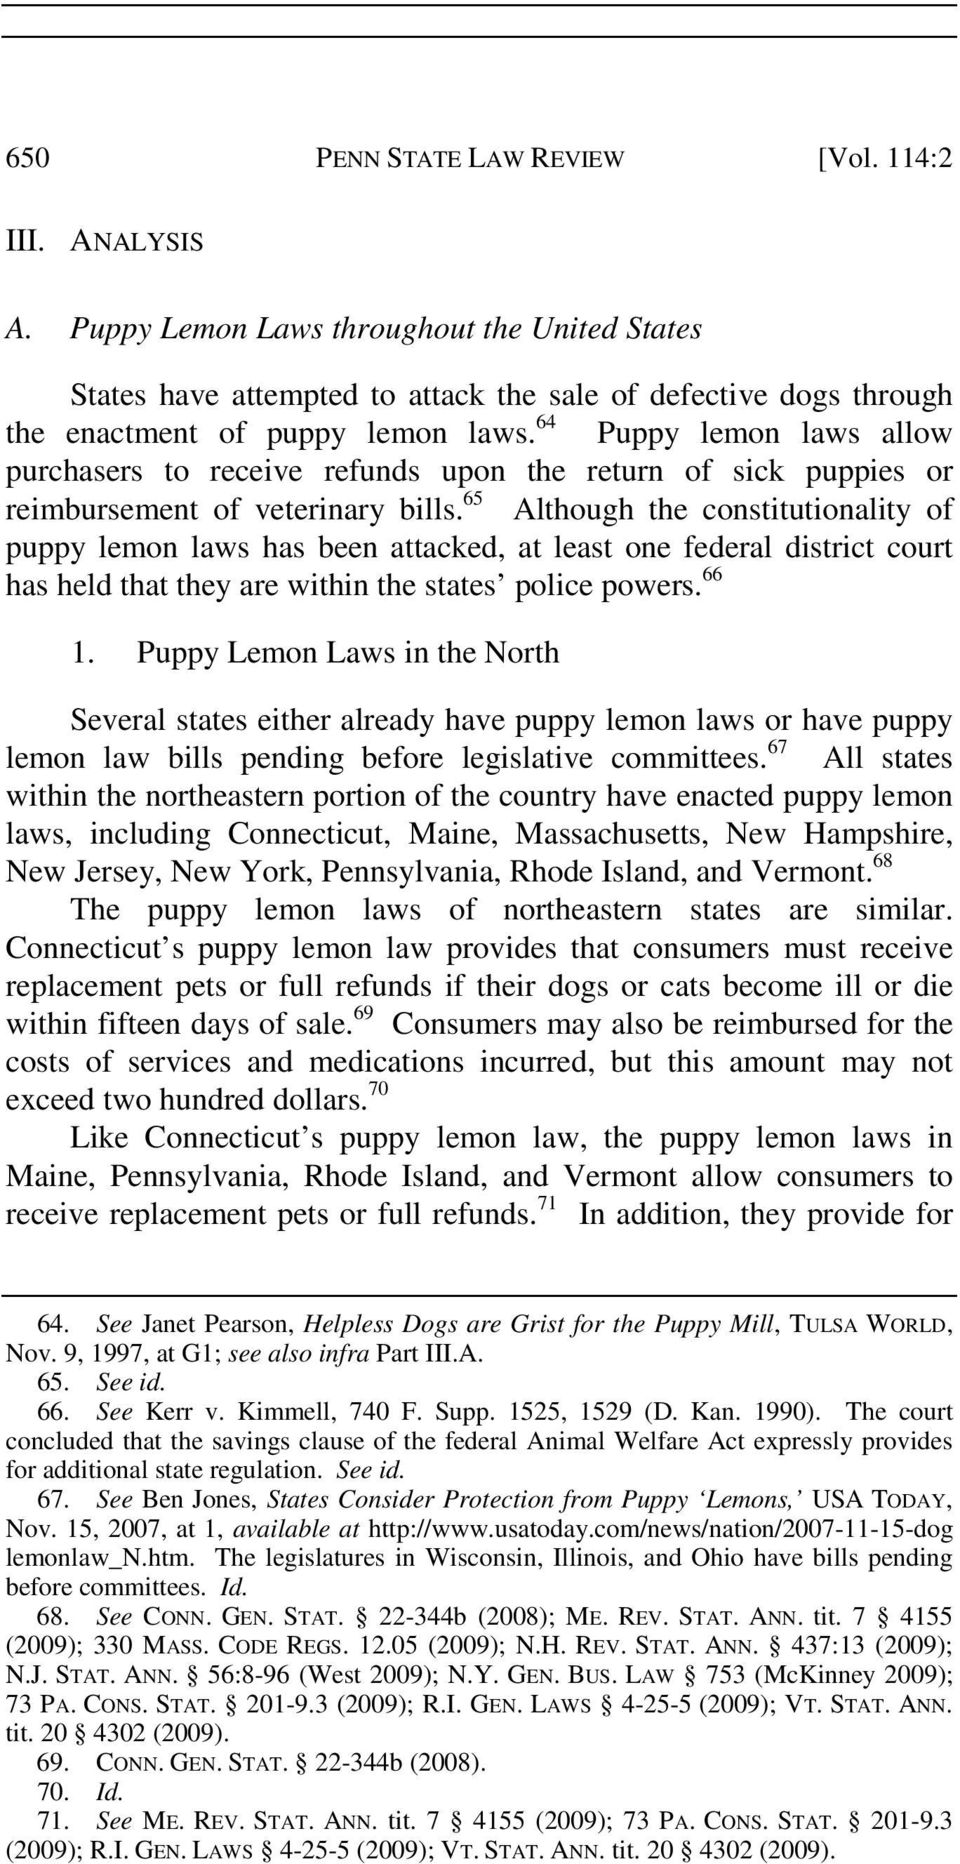 64 Puppy lemon laws allow purchasers to receive refunds upon the return of sick puppies or reimbursement of veterinary bills.